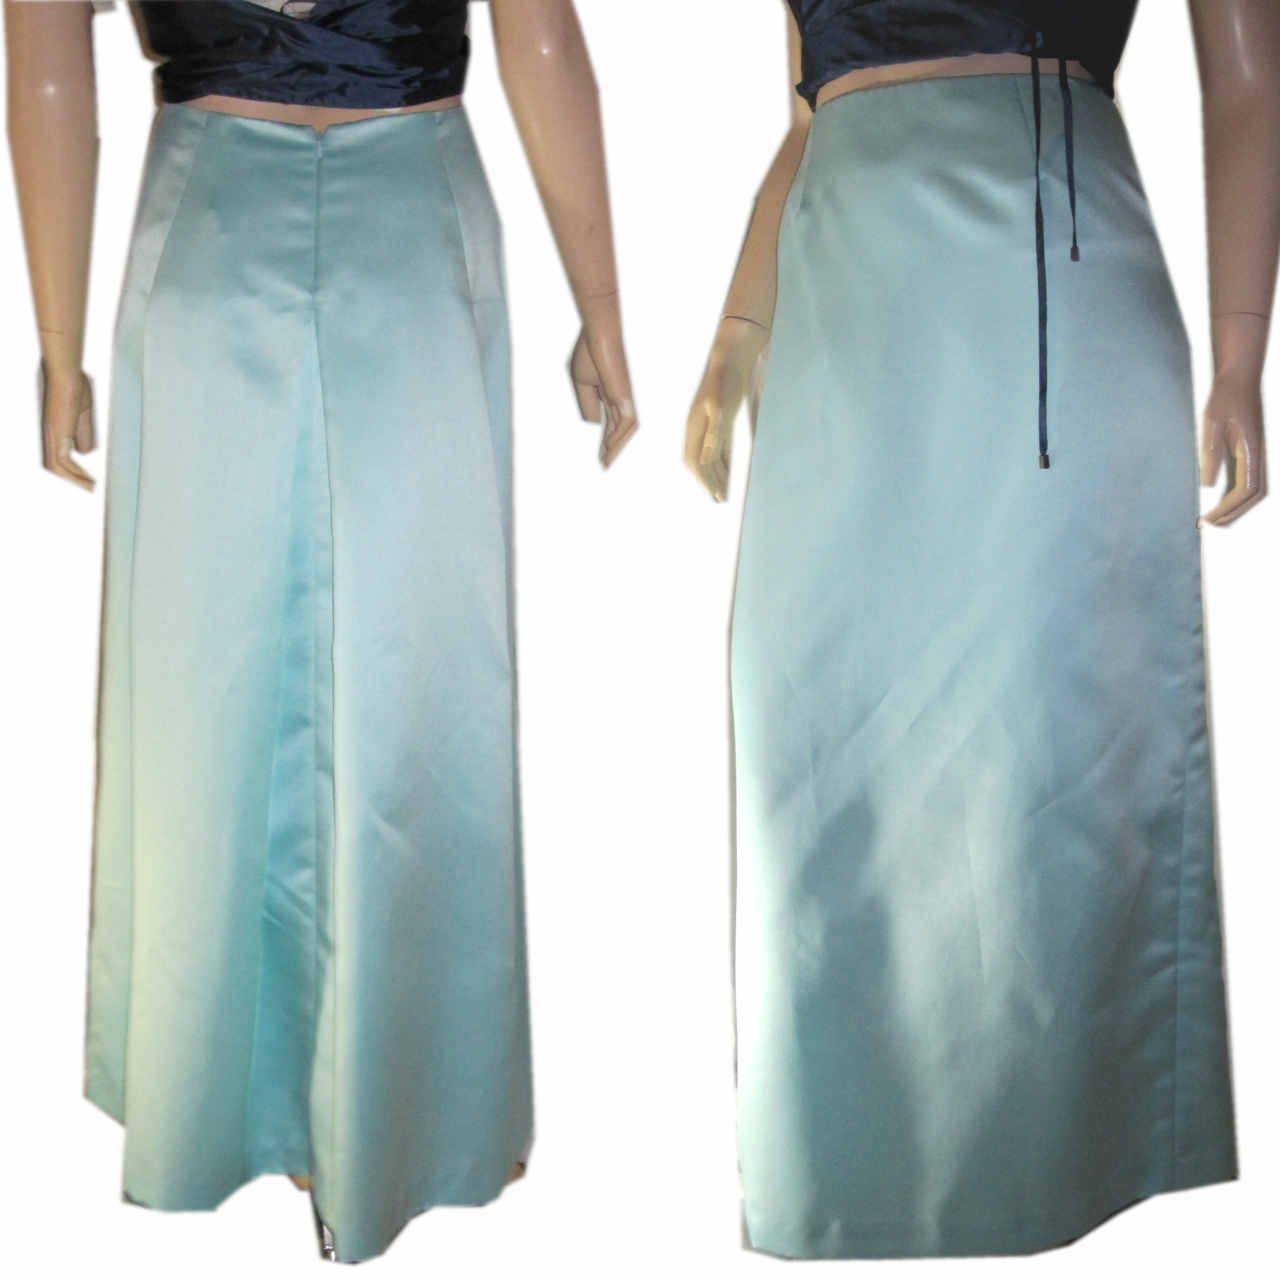 sz 8 - NICOLE MILLER Pastel Aqua Satin Evening Skirt $24.99